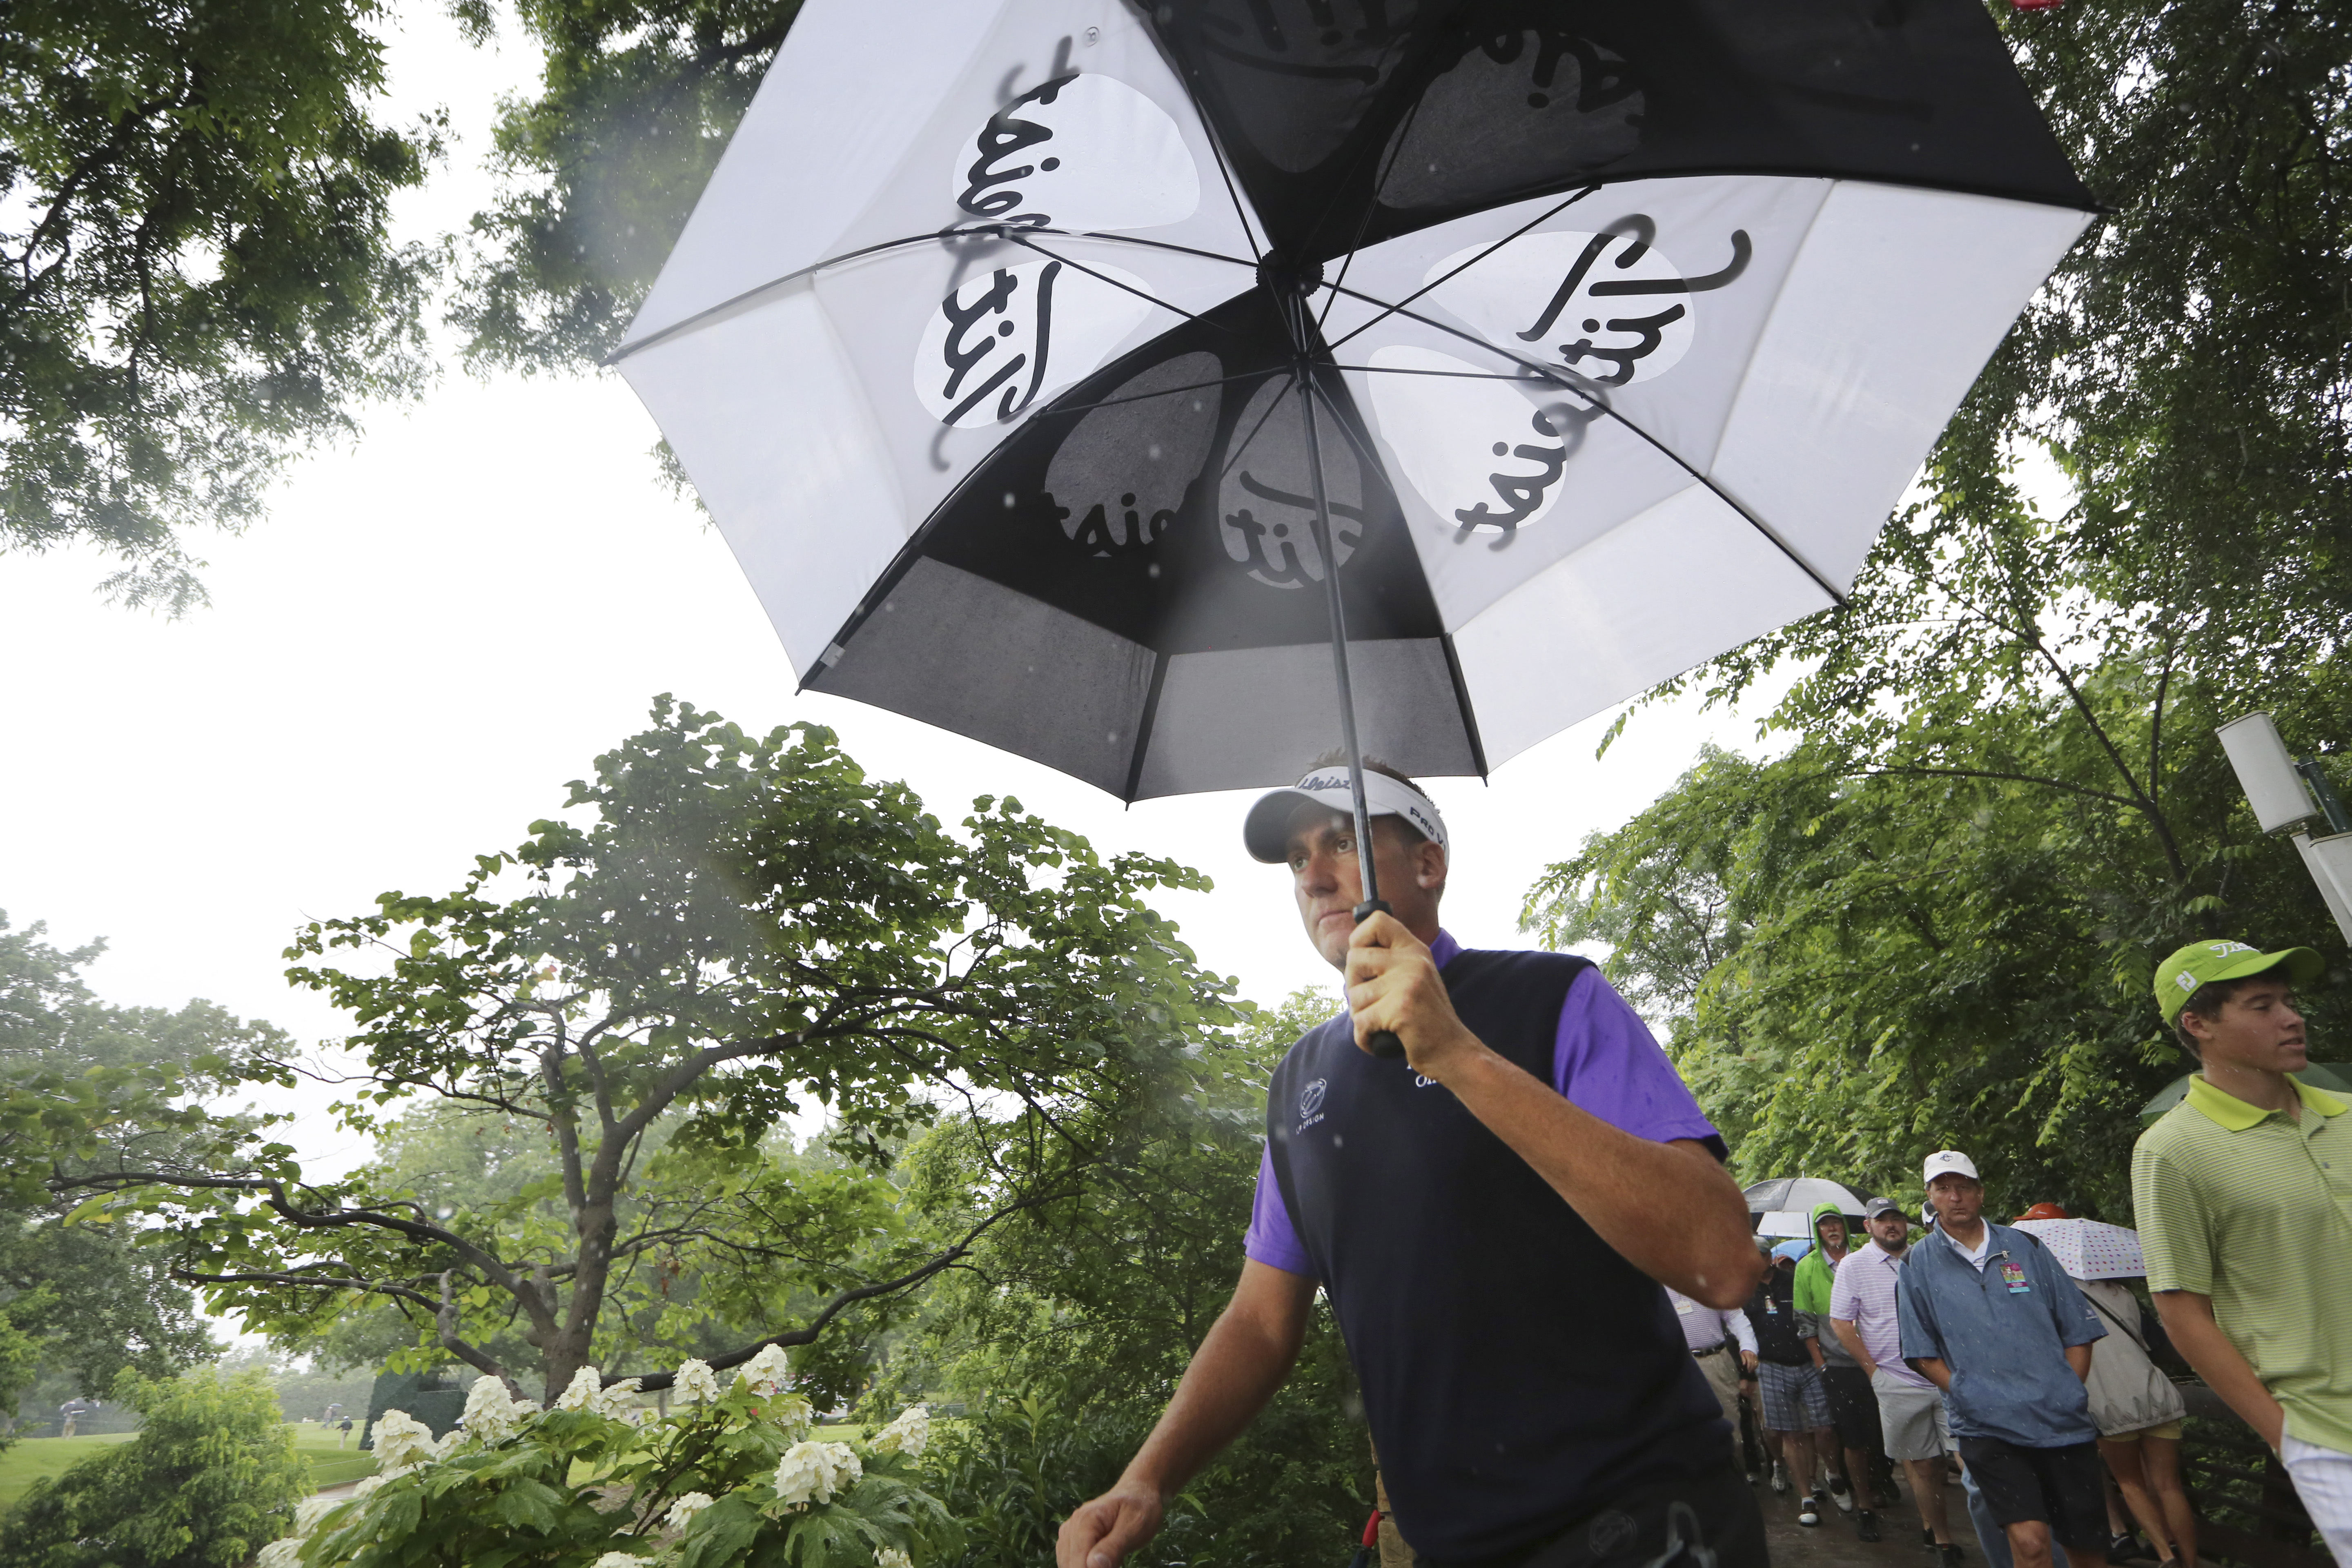 Ian Poulter uses an umbrella while walking the ninth hole during the second round of the Colonial golf tournament on Friday.